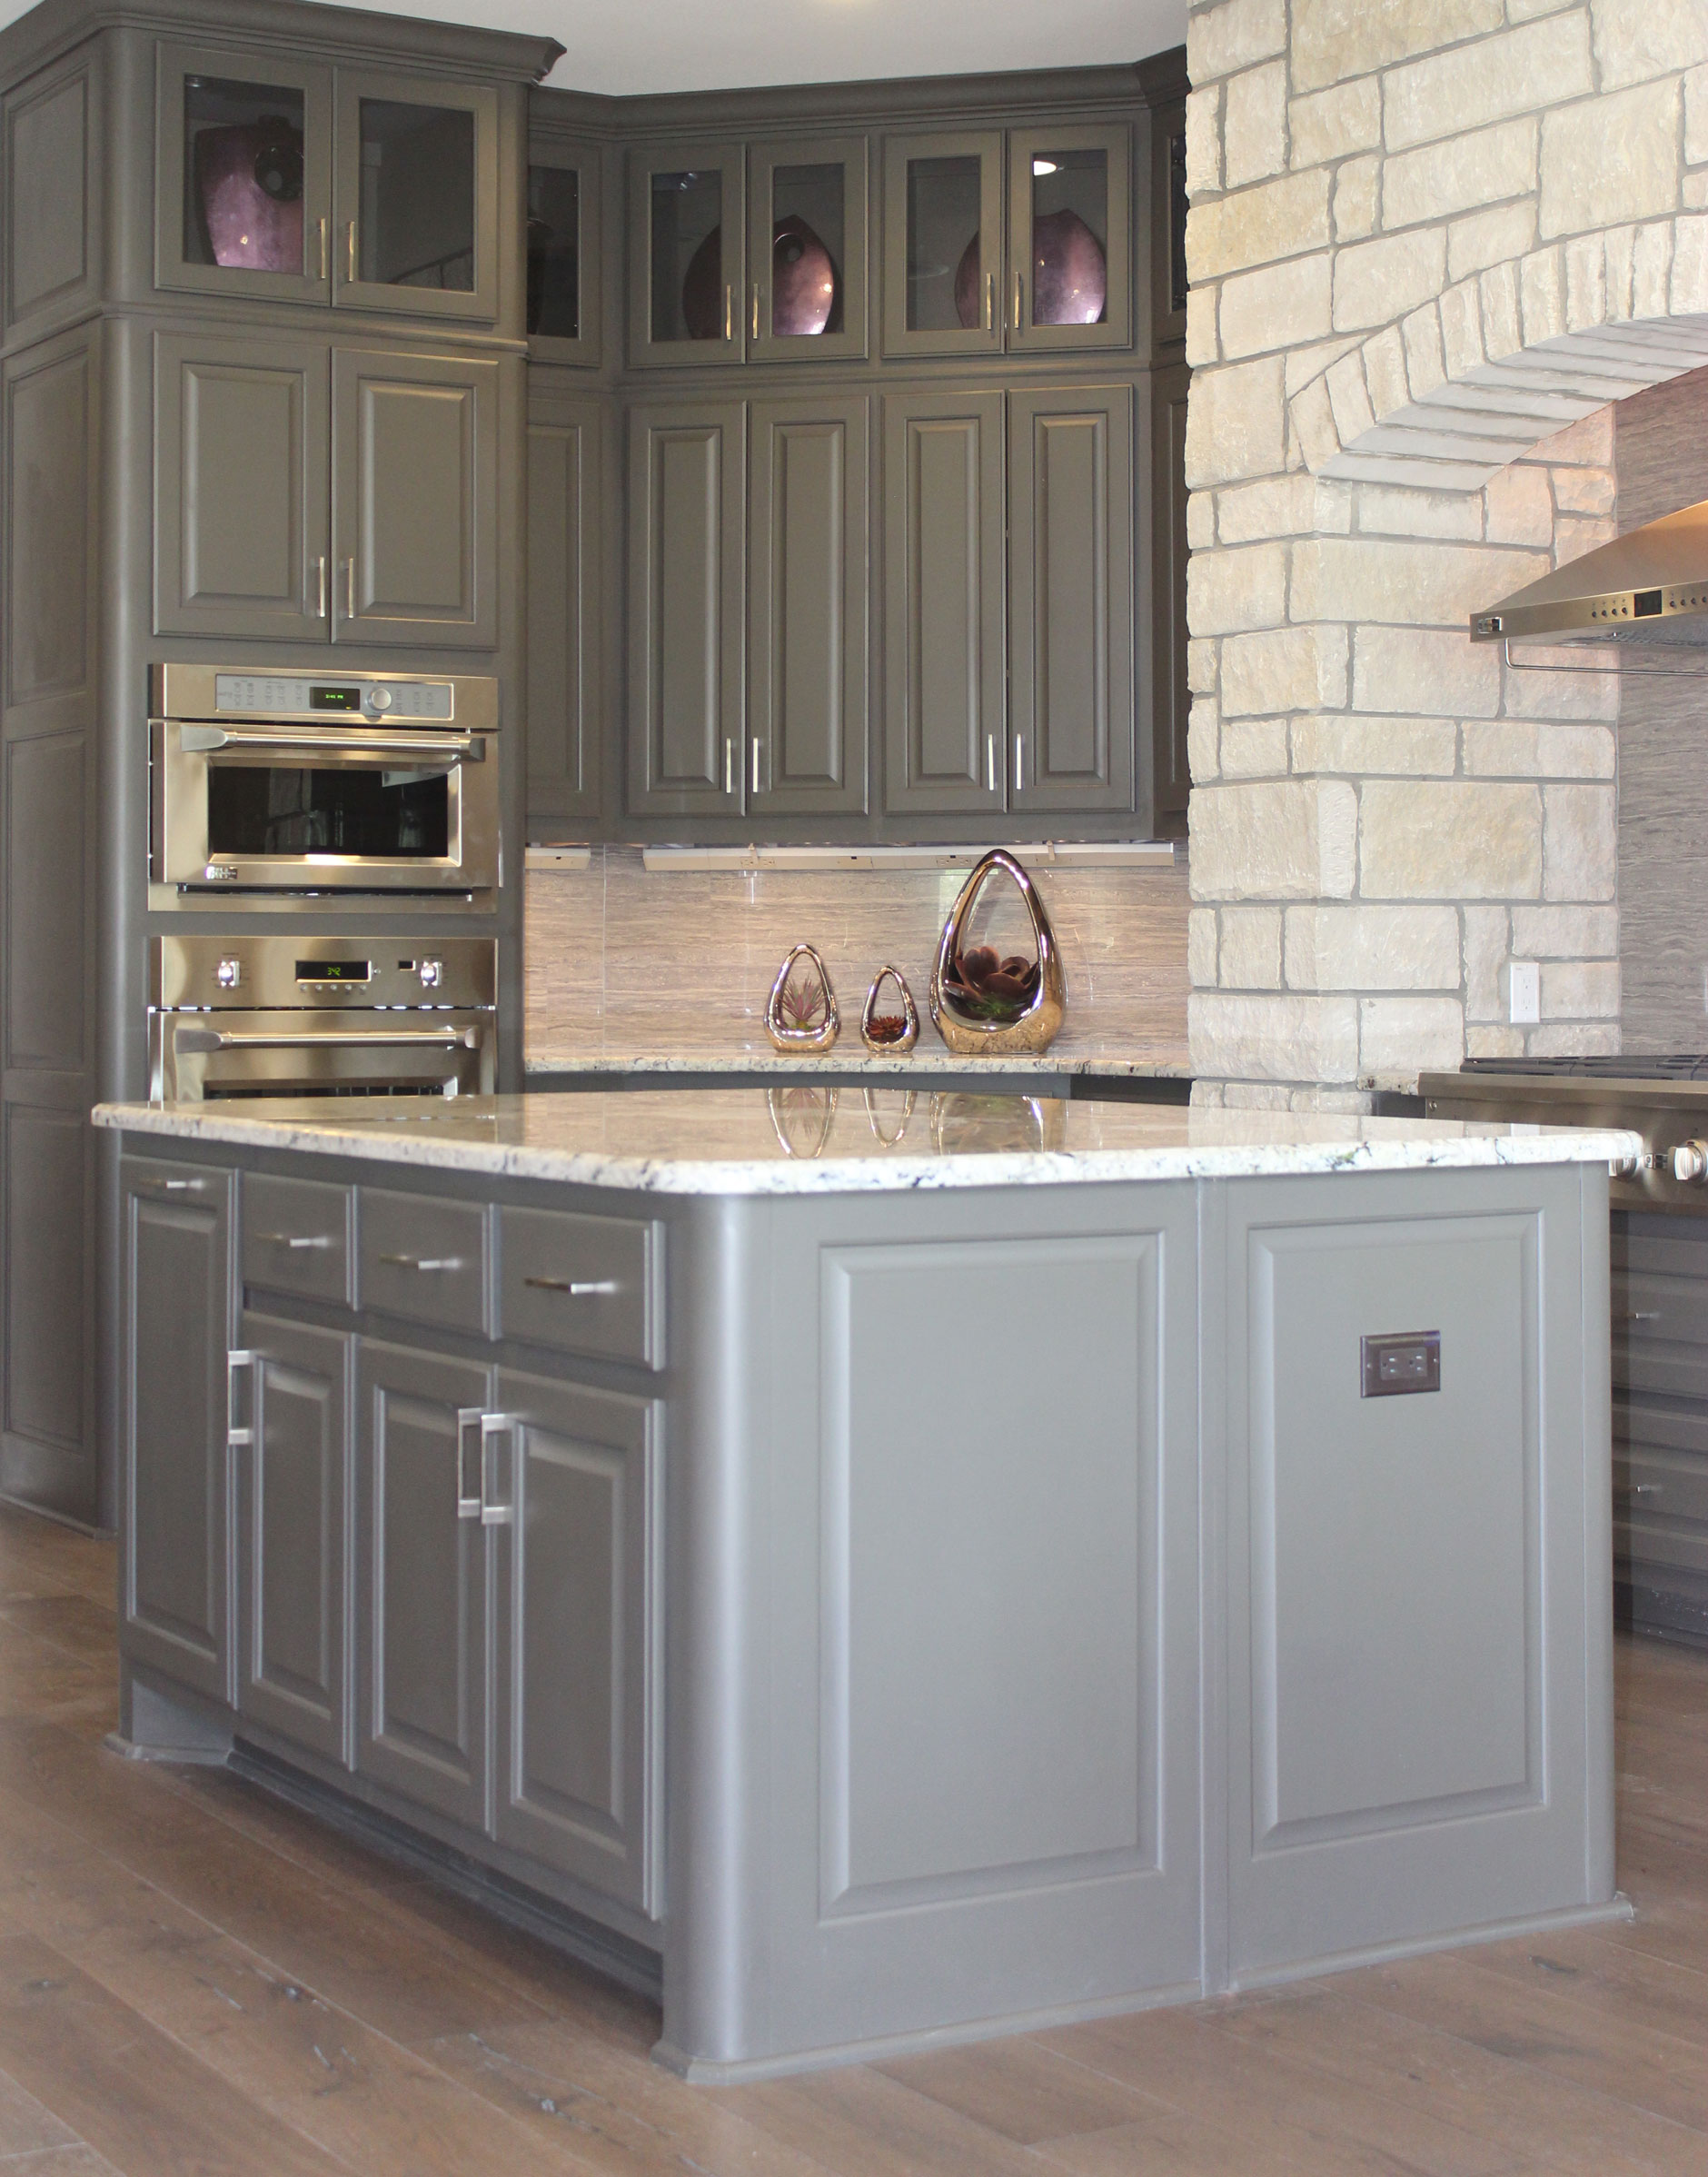 Kitchen island burrows cabinets central texas builder for Kitchen island cabinets